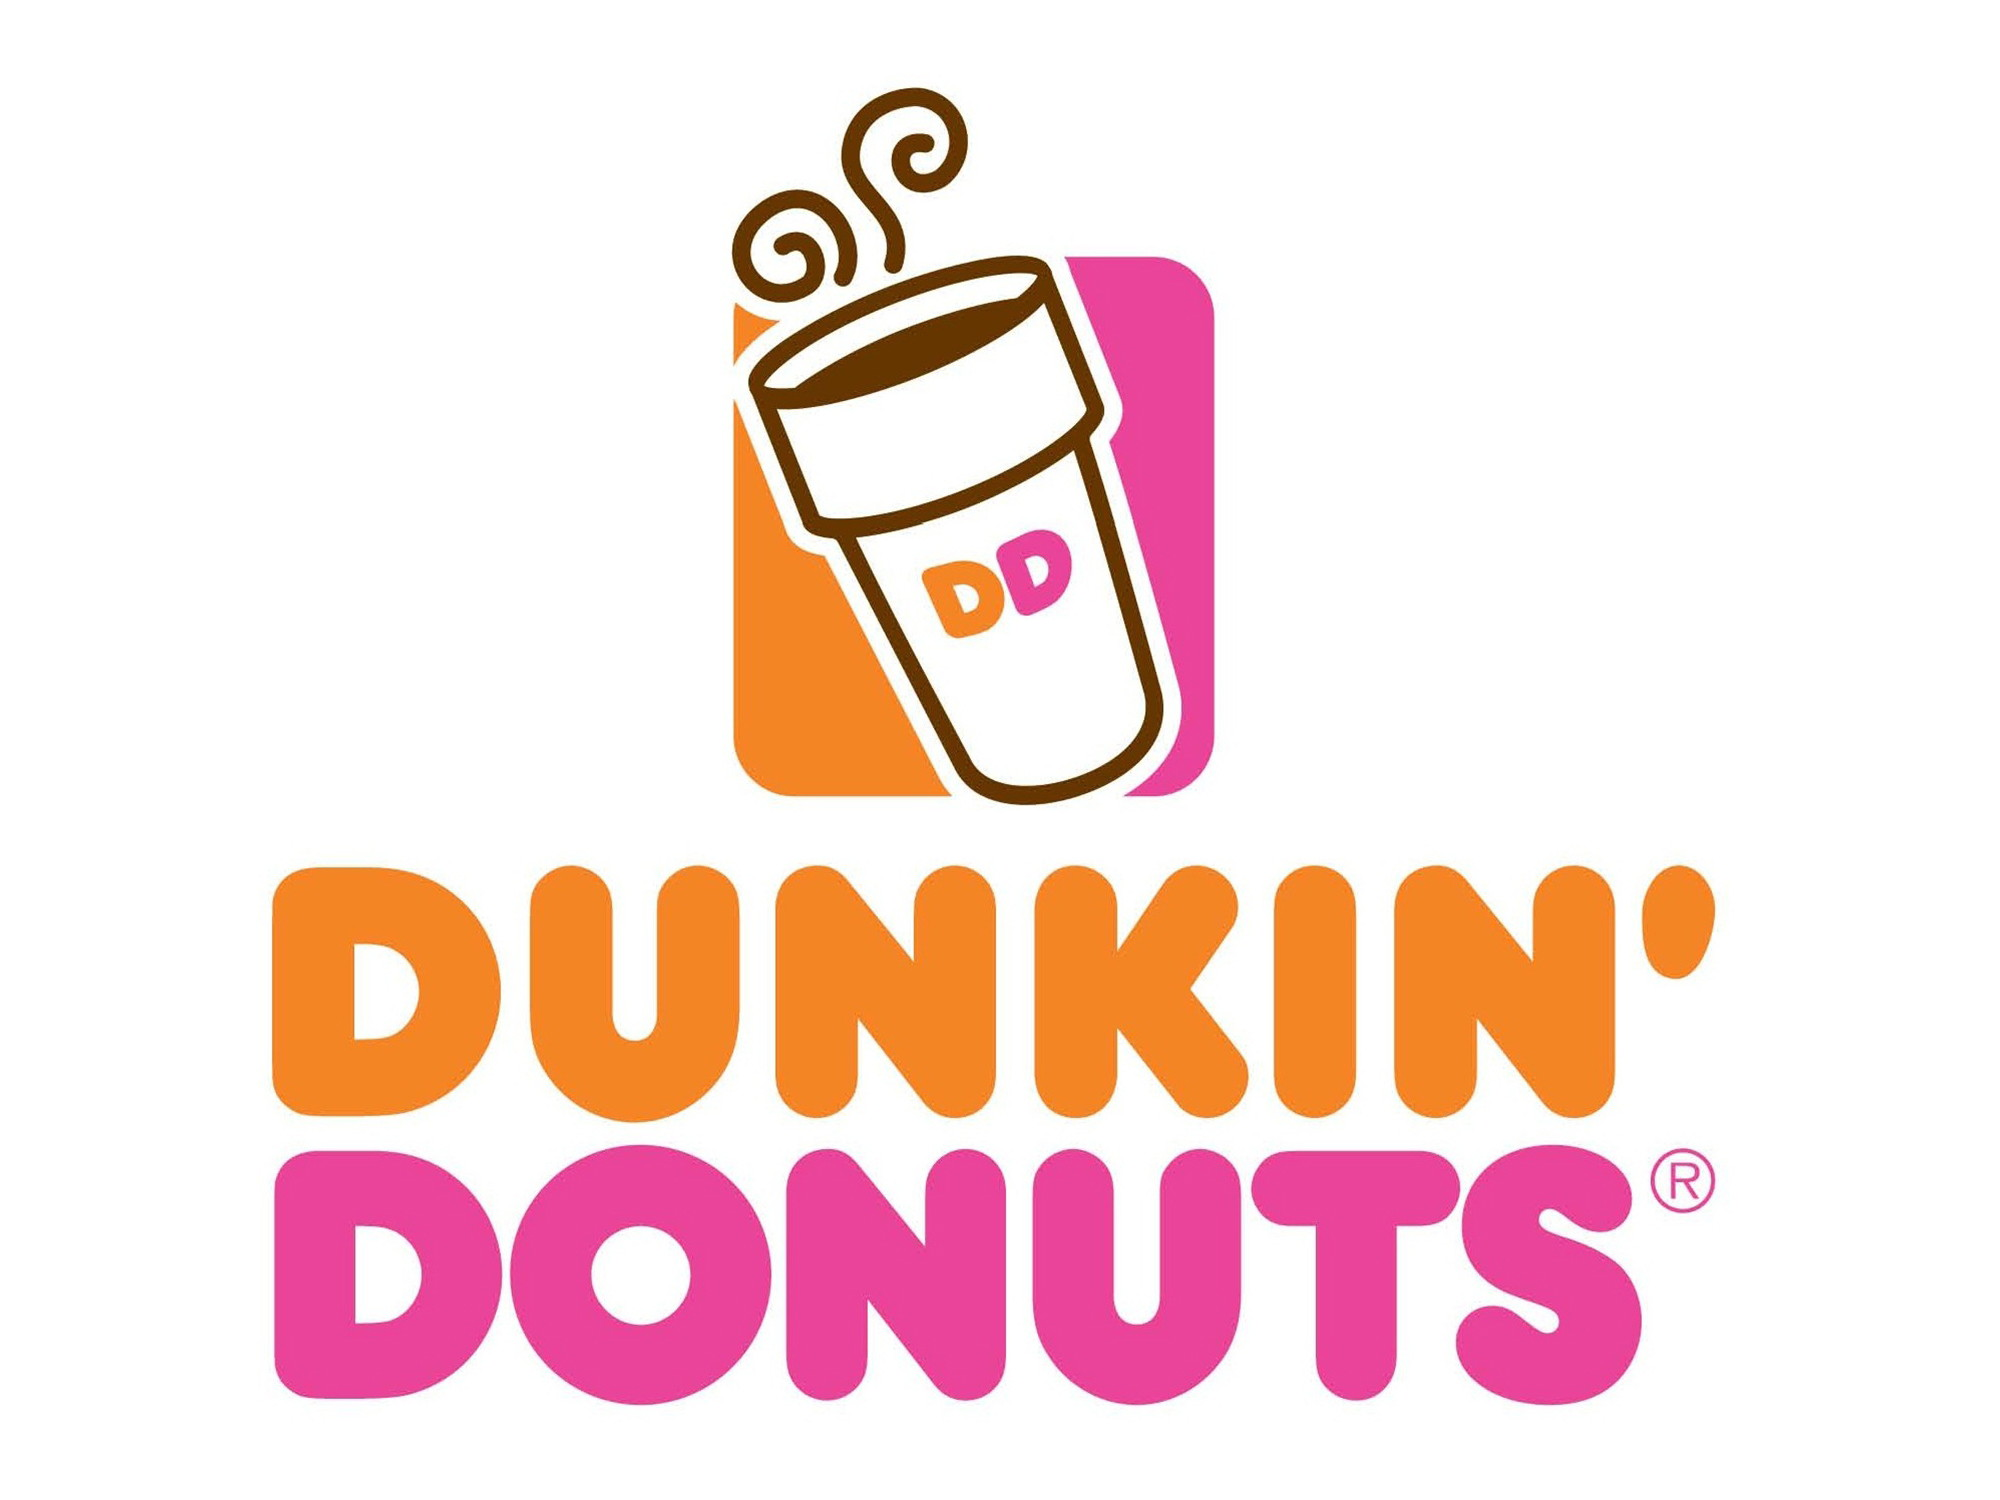 photograph about Dunkin Donuts Coupons Printable called Dunkin-donuts Coupon codes - The Krazy Coupon Female